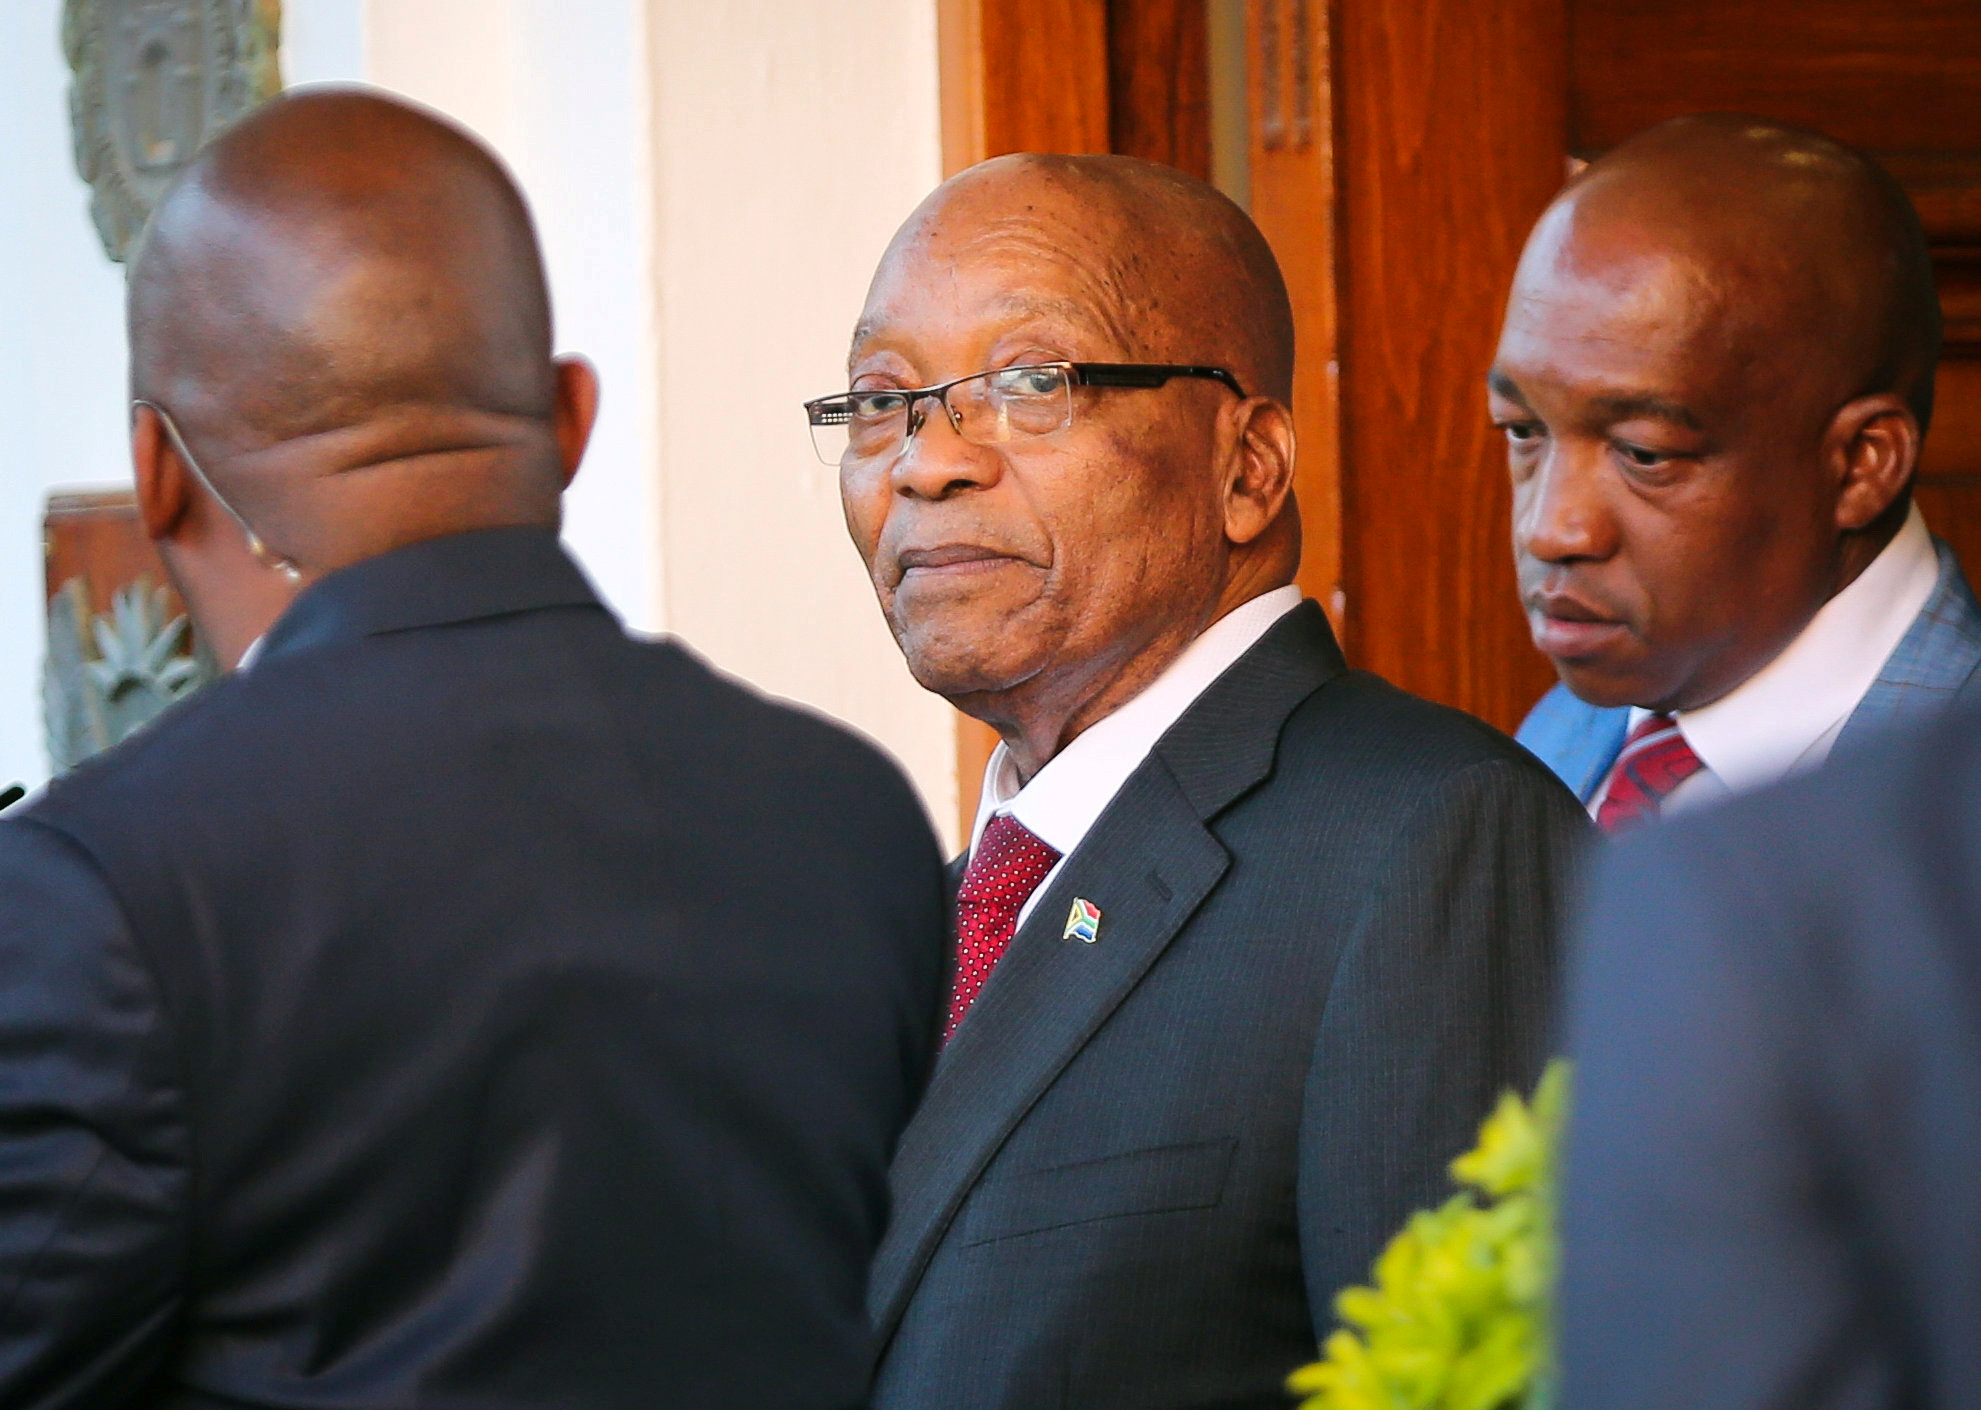 President Jacob Zuma leaves Tuynhuys, the office of the presidency, in Cape Town, South Africa on Feb. 7, 2018.